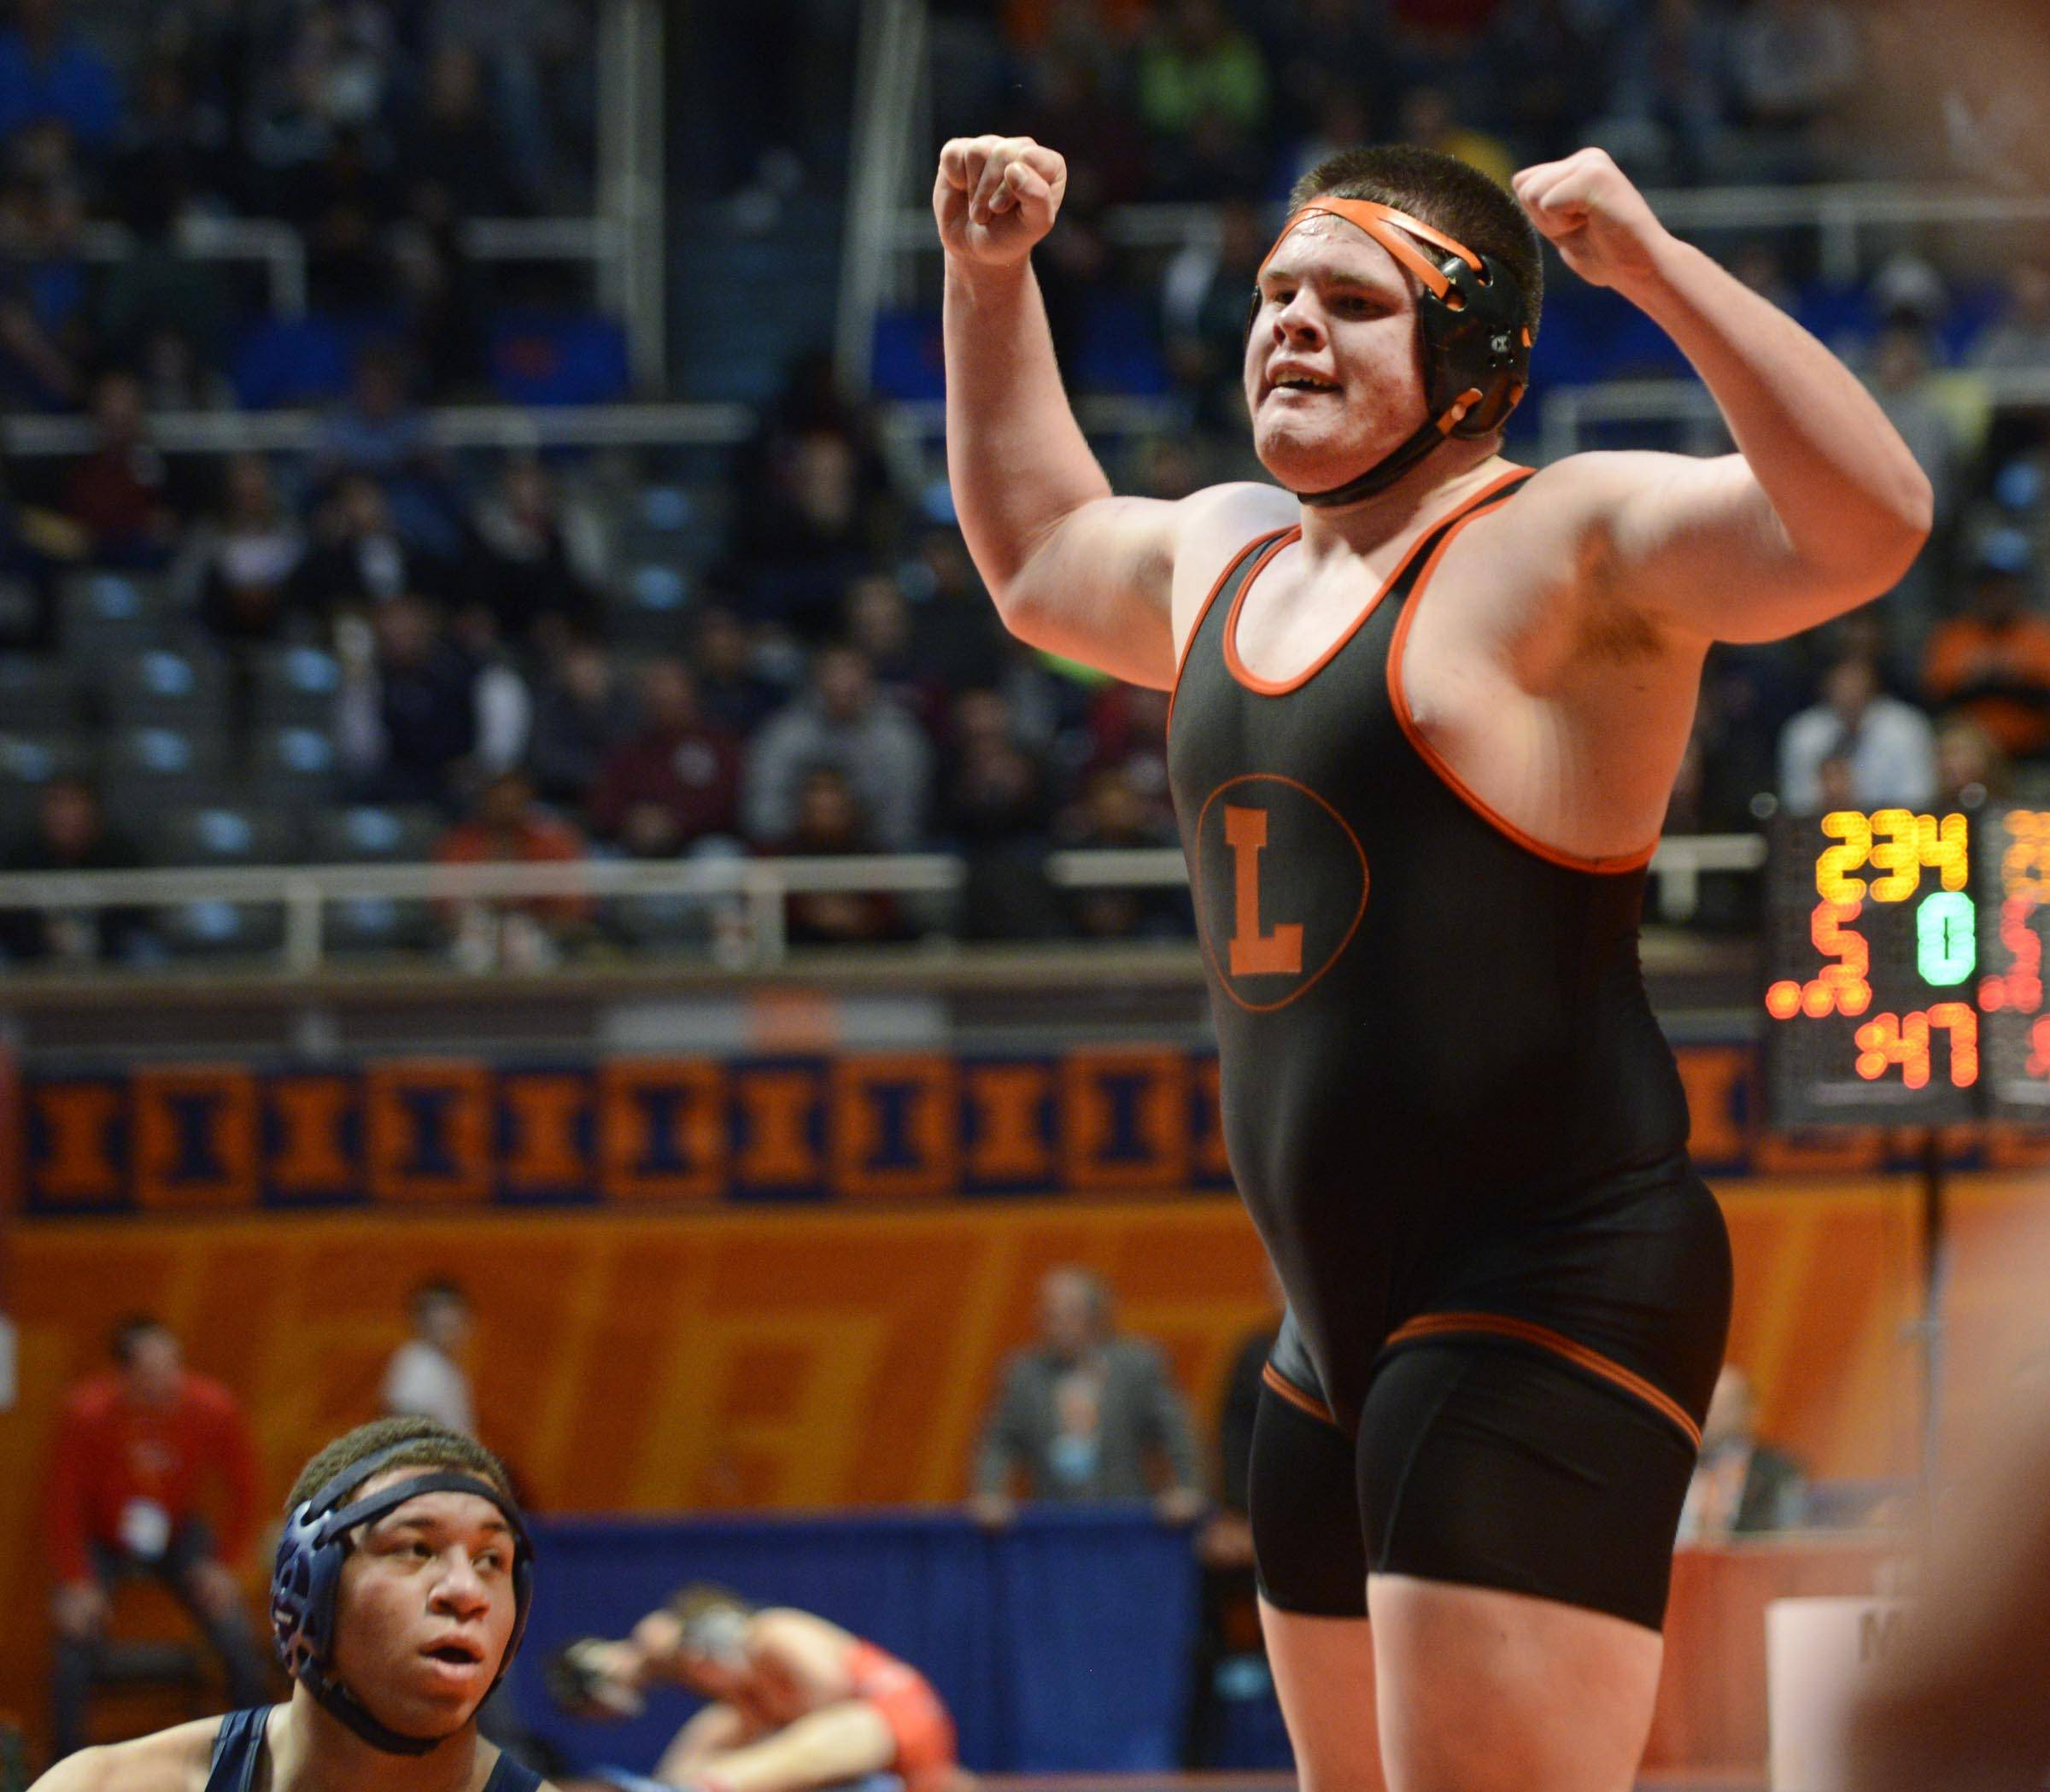 Libertyville's Chris McDermand raises his fists in victory after beating Michael Hobbs of Downers Grove South Friday in quarterfinals of the 285-pound weight class of the 3A IHSA state tournament .